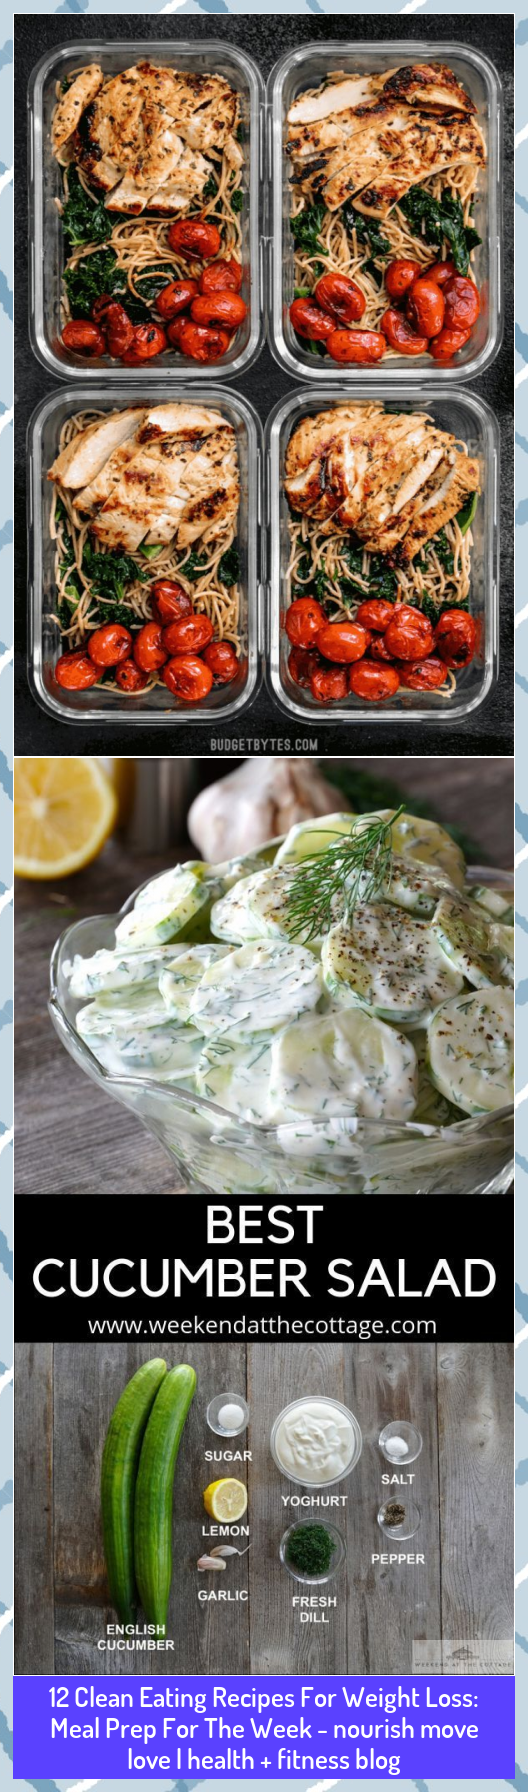 12 Clean Eating Recipes For Weight Loss: Meal Prep For The Week - nourish move love   health + fitne...